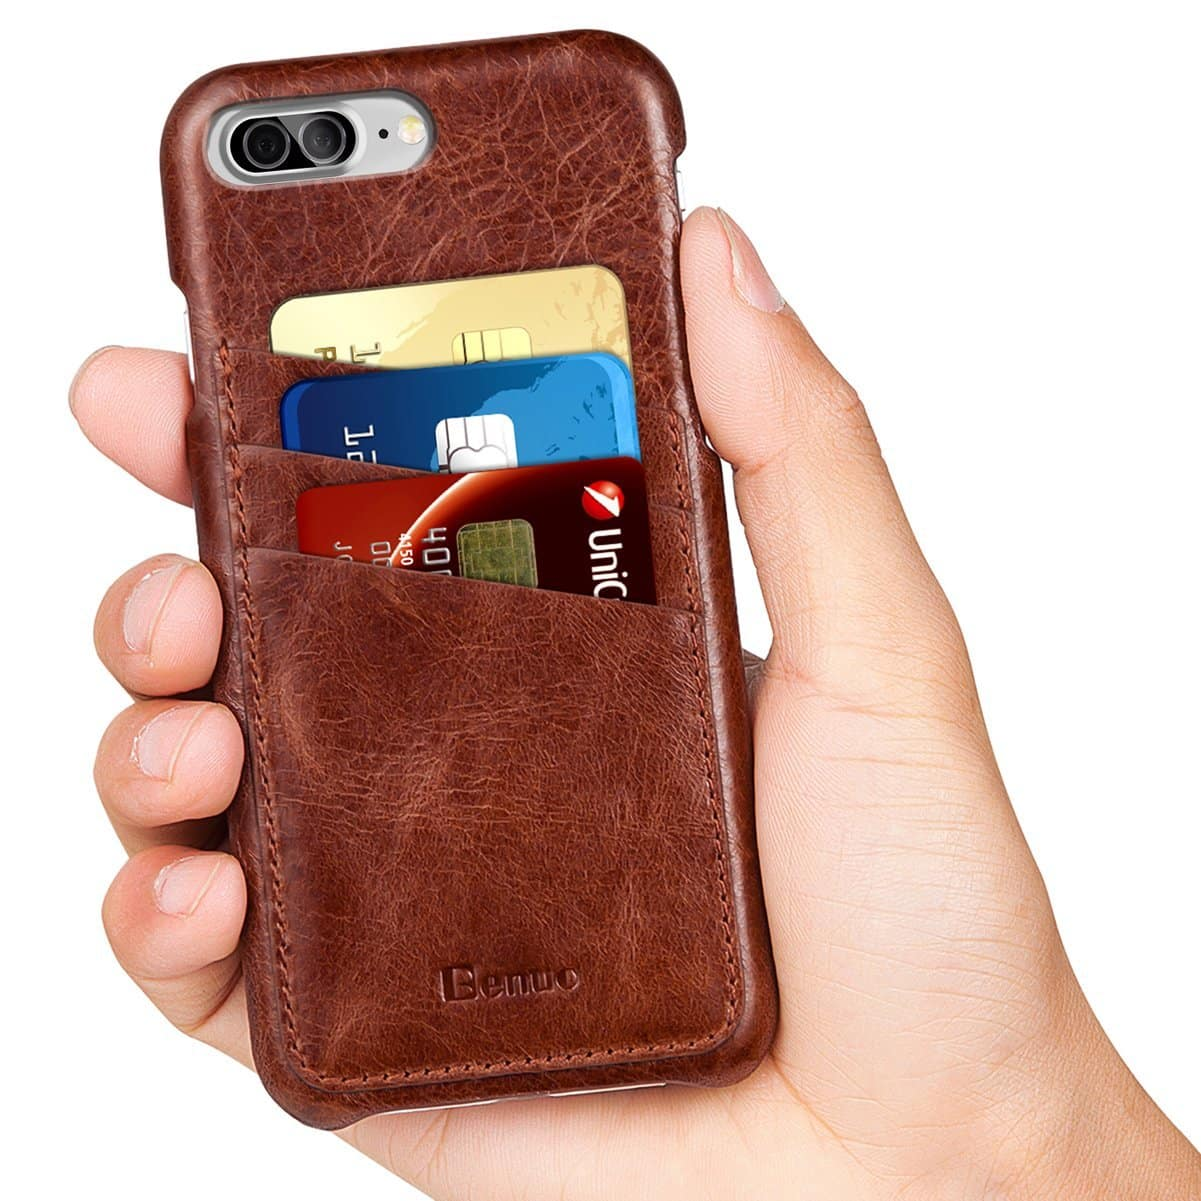 63% OFF $7 iPhone 7/7Plus Benuo Genuine Leather Card Case with Card Slot Vintage Series + FS w/ Prime